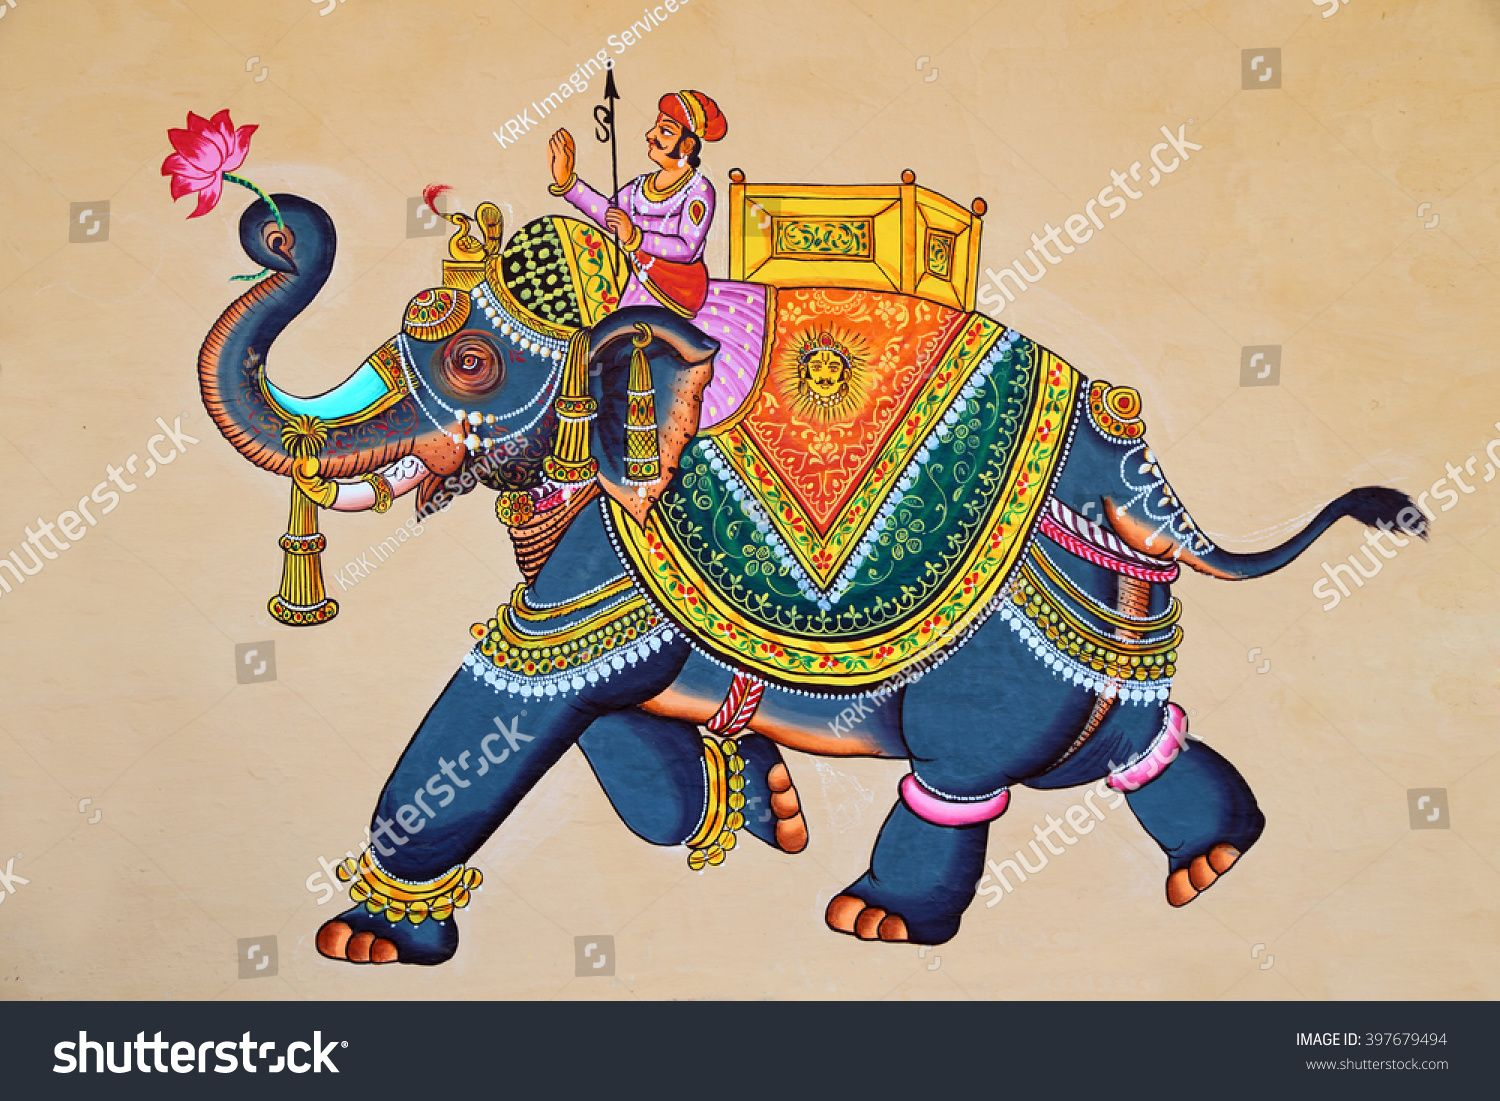 Traditional Indian Or Rajasthani Wall Painting Of Elephant With